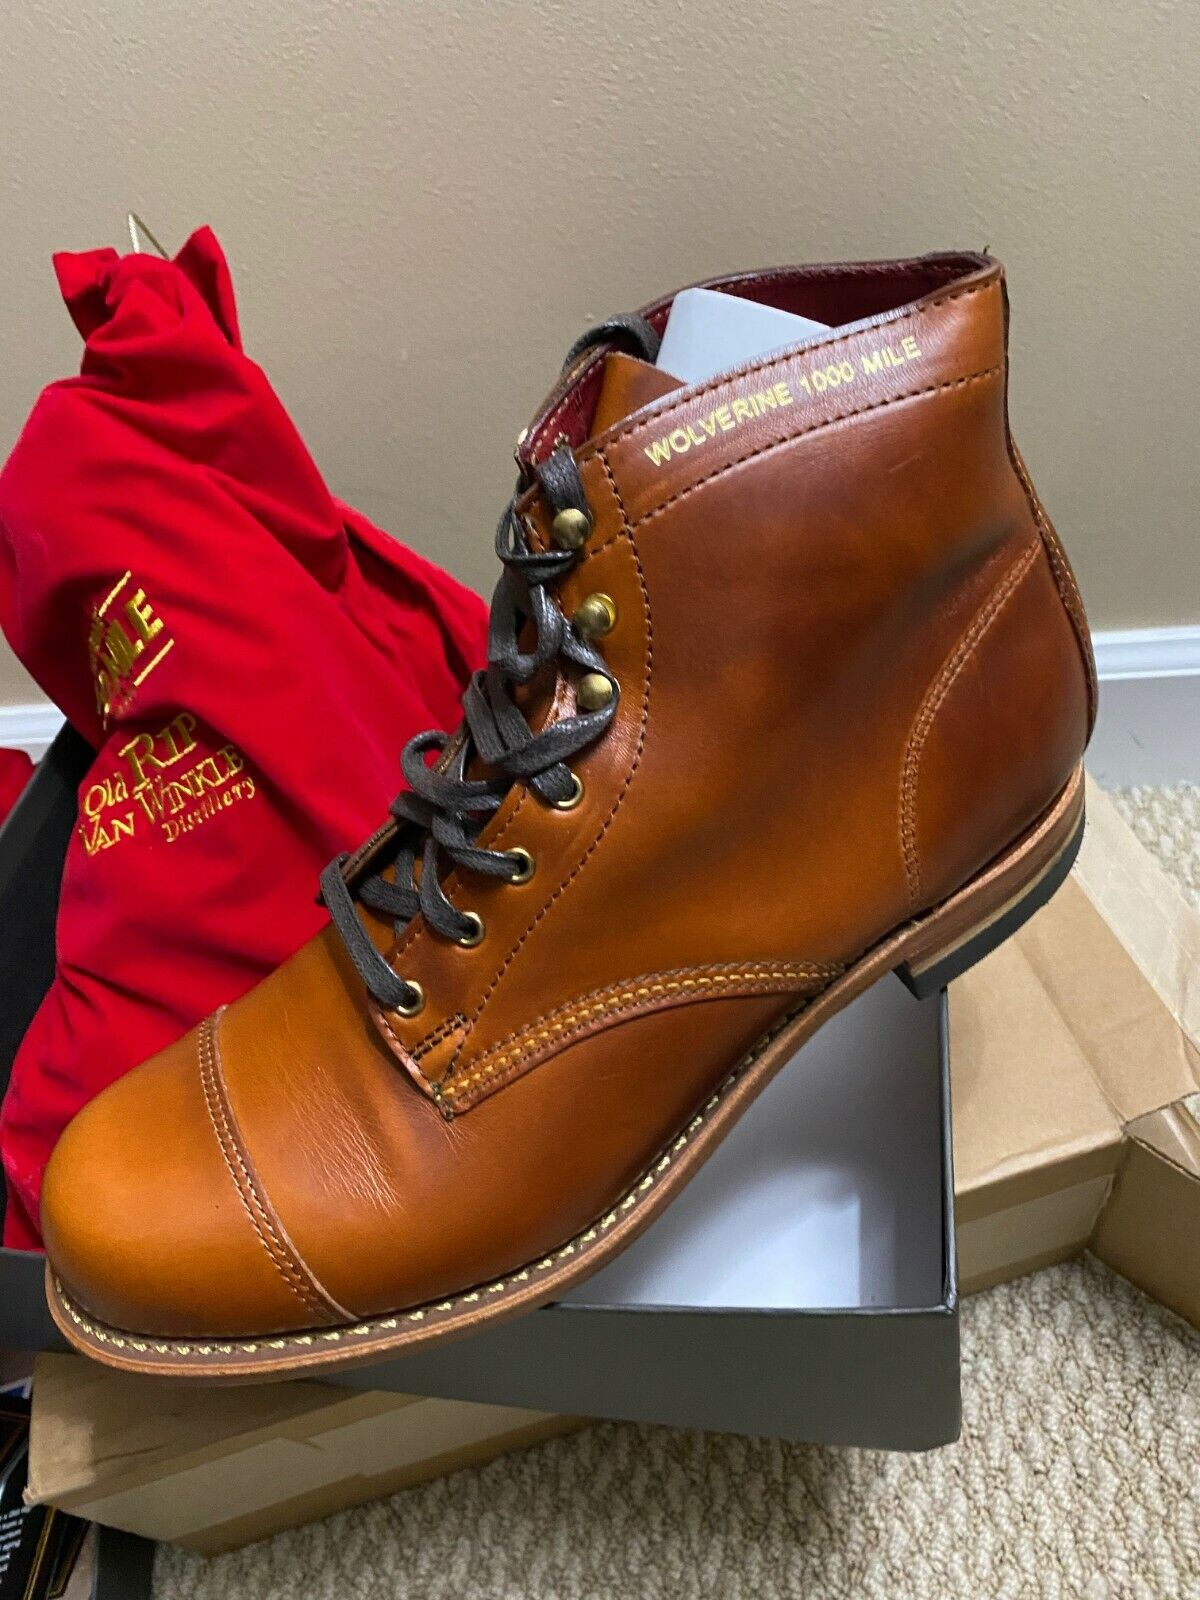 Wolverine 1000 Mile x Old Rip Van Winkle Boot- Size 10.5 D -NEW Limited Edition